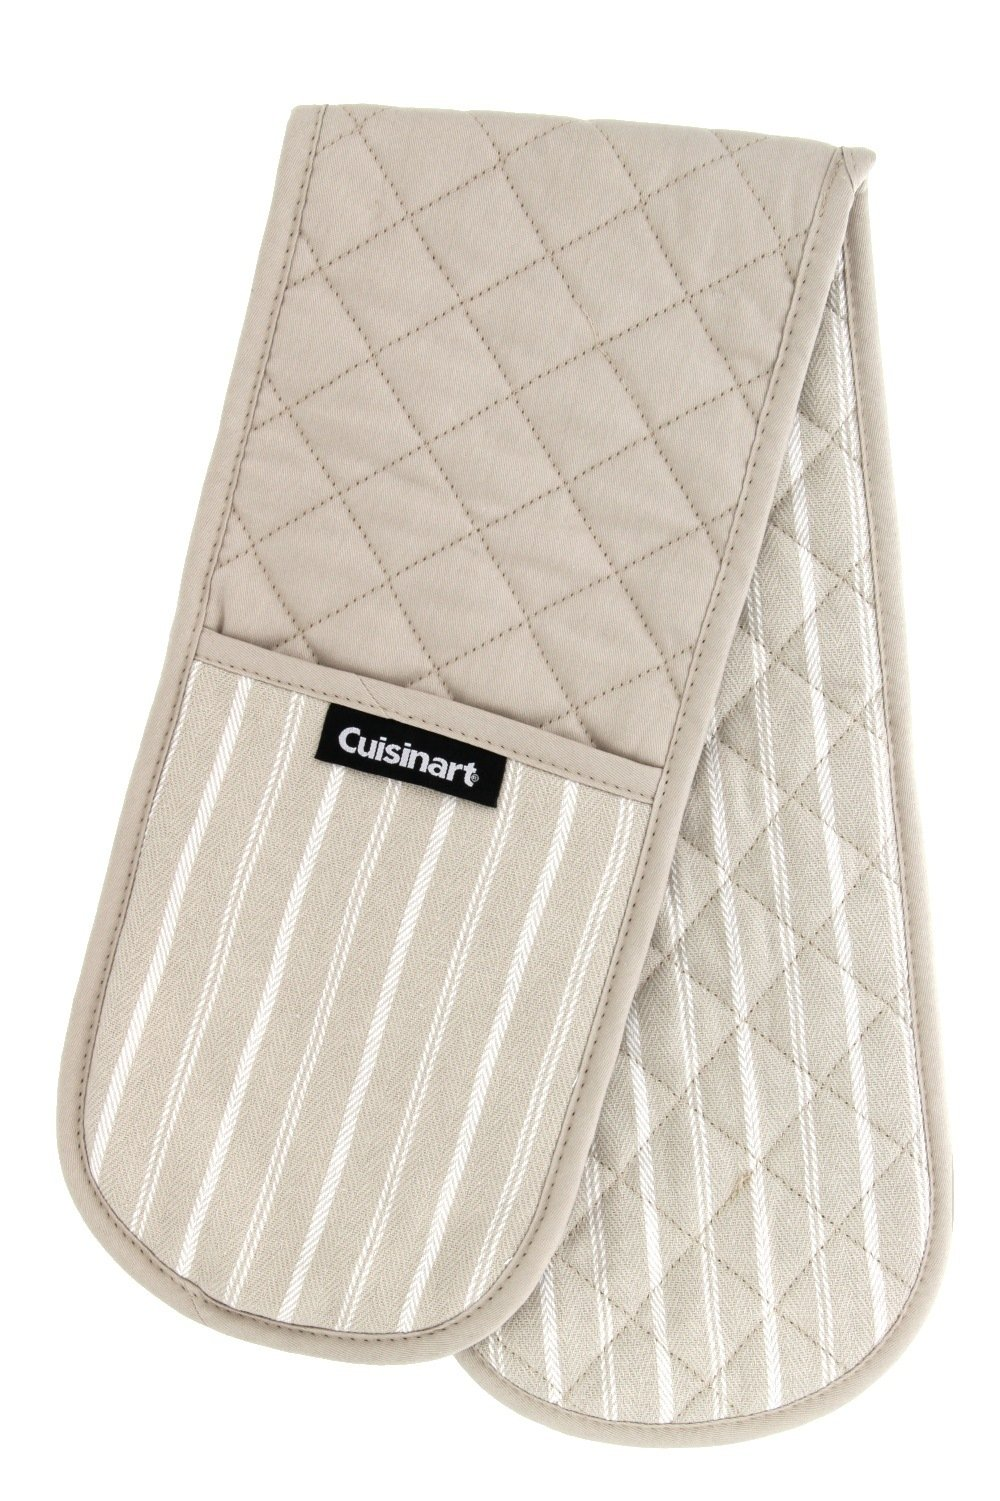 "Cuisinart Double Oven Mitt Glove/Moppine, Quilted Heat Resistant Kitchen Accessory, Twill Stripe, 35"" x 7.5"", Great for Cooking, Baking, and Handling Hot Pots & Pans- Tan"